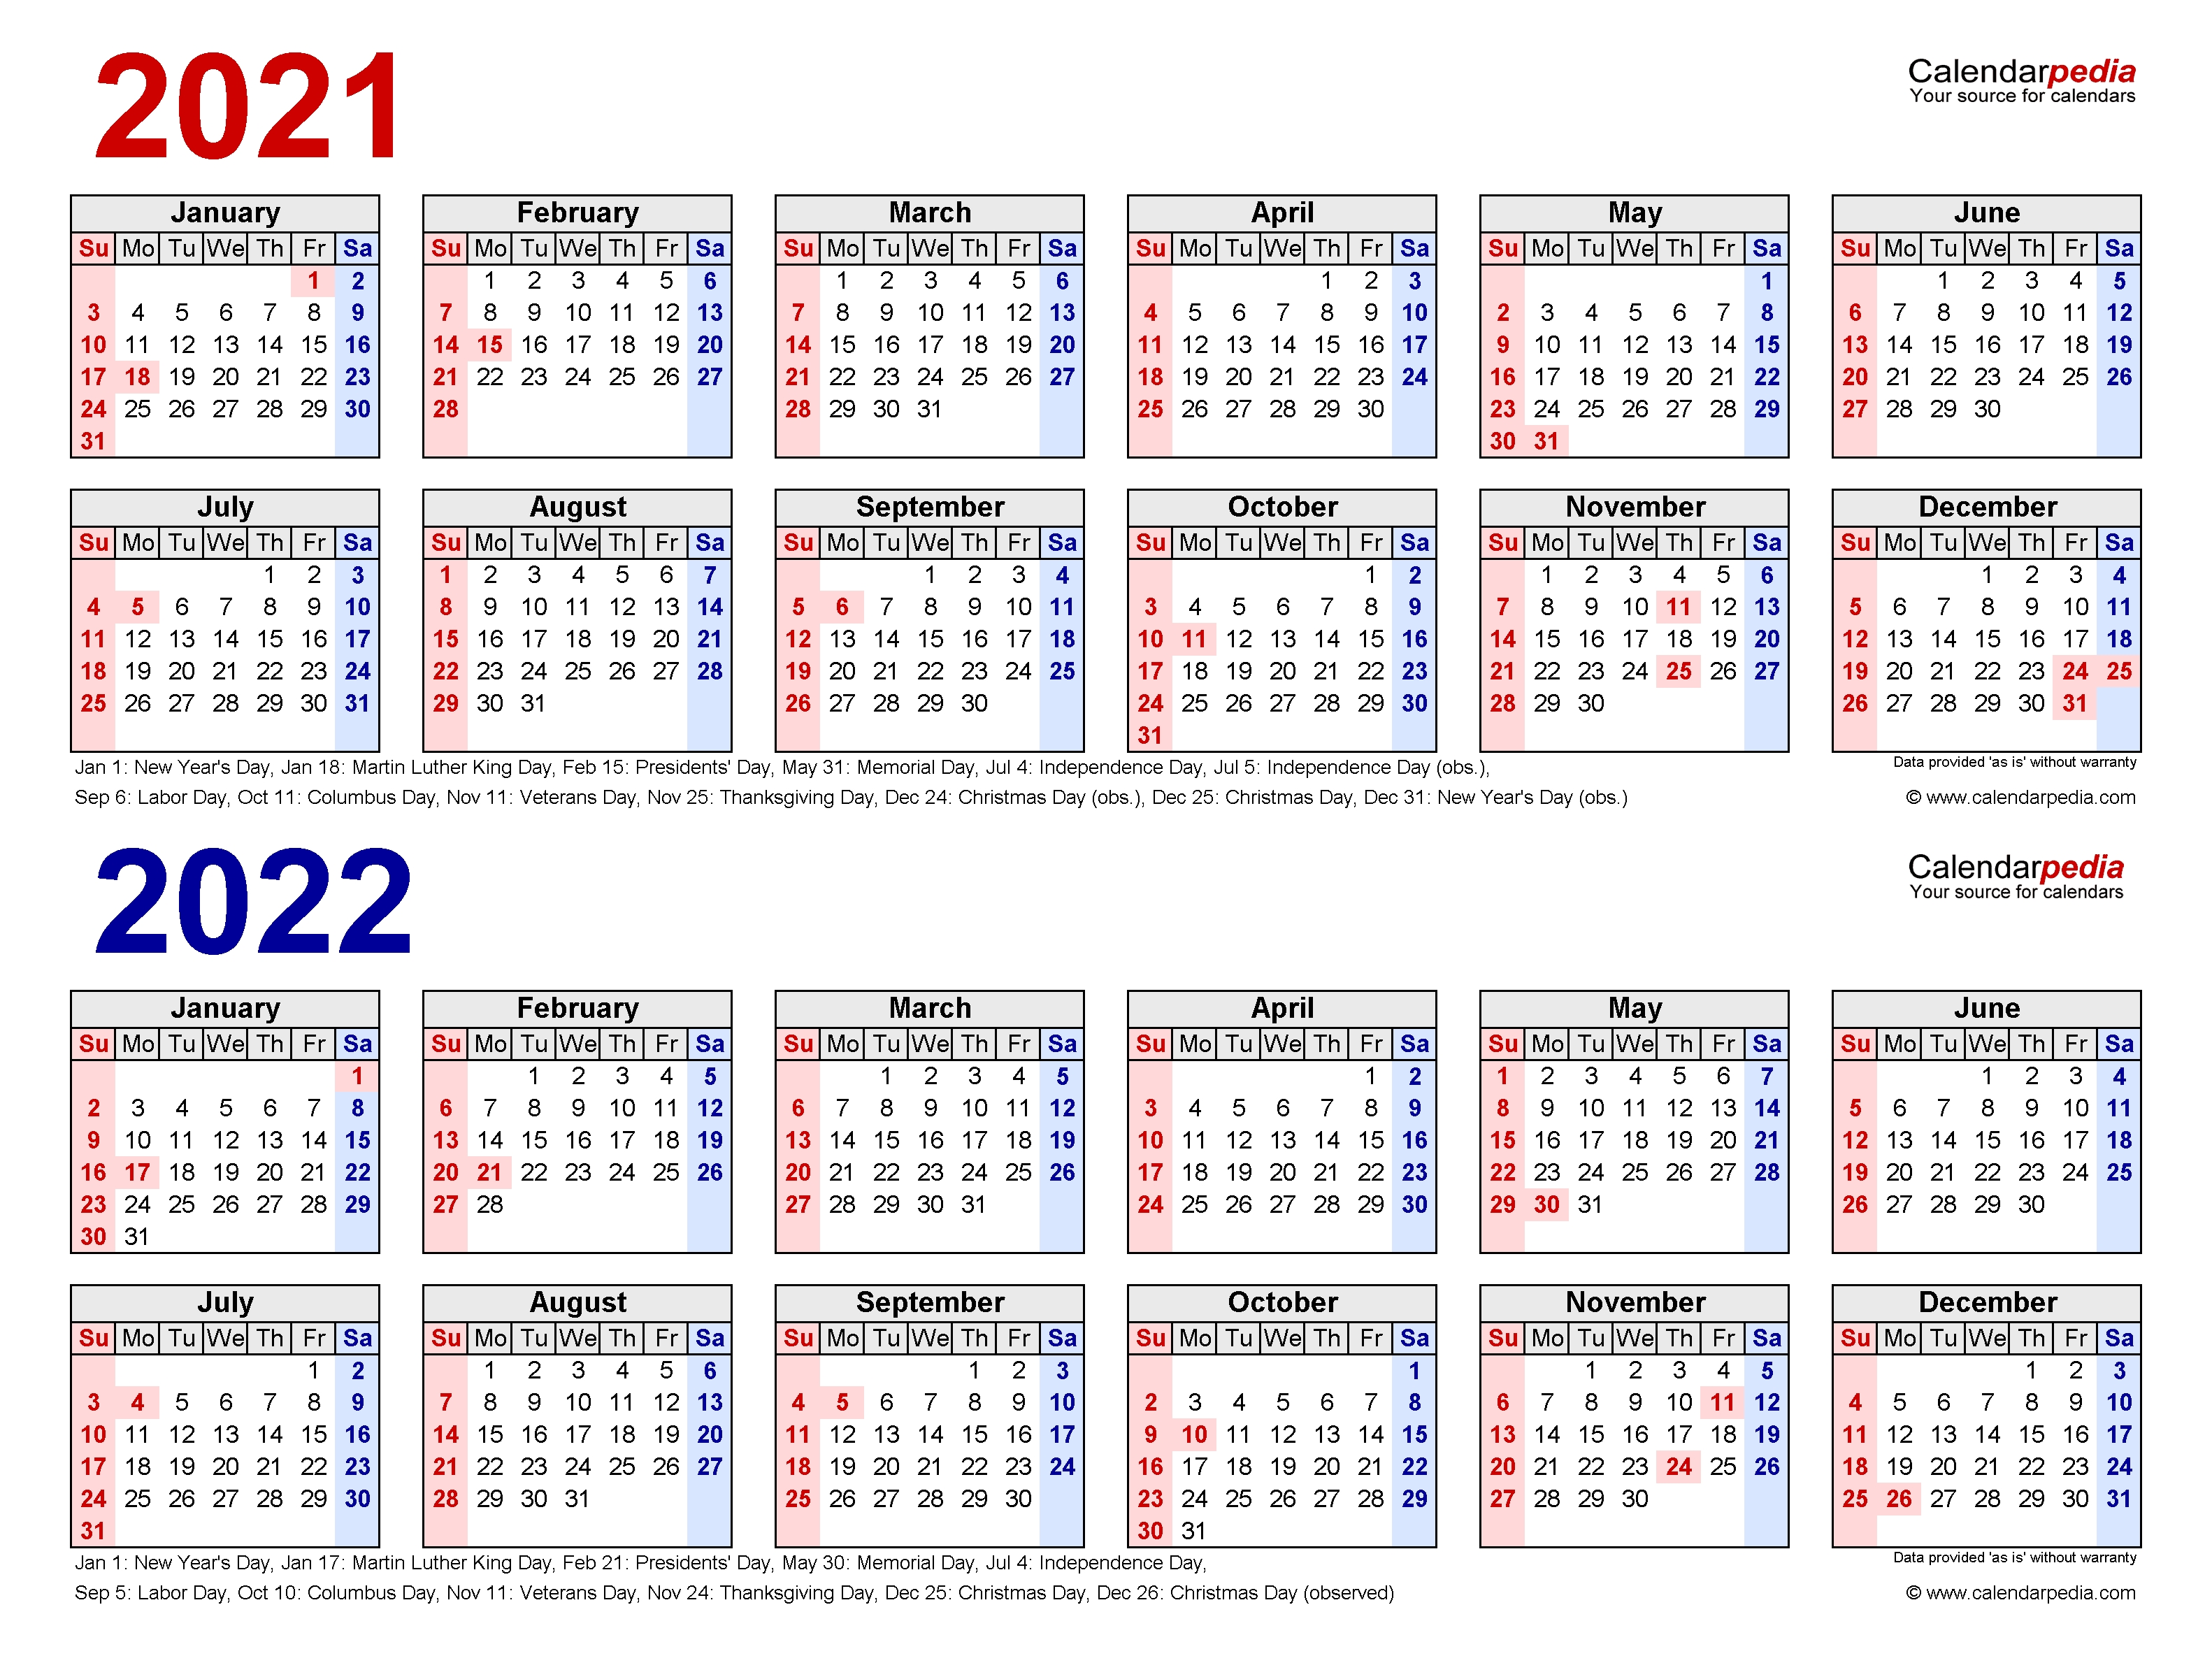 2021-2022 Two Year Calendar - Free Printable Pdf Templates intended for Small Yearly Calendars For 2021 And 2022